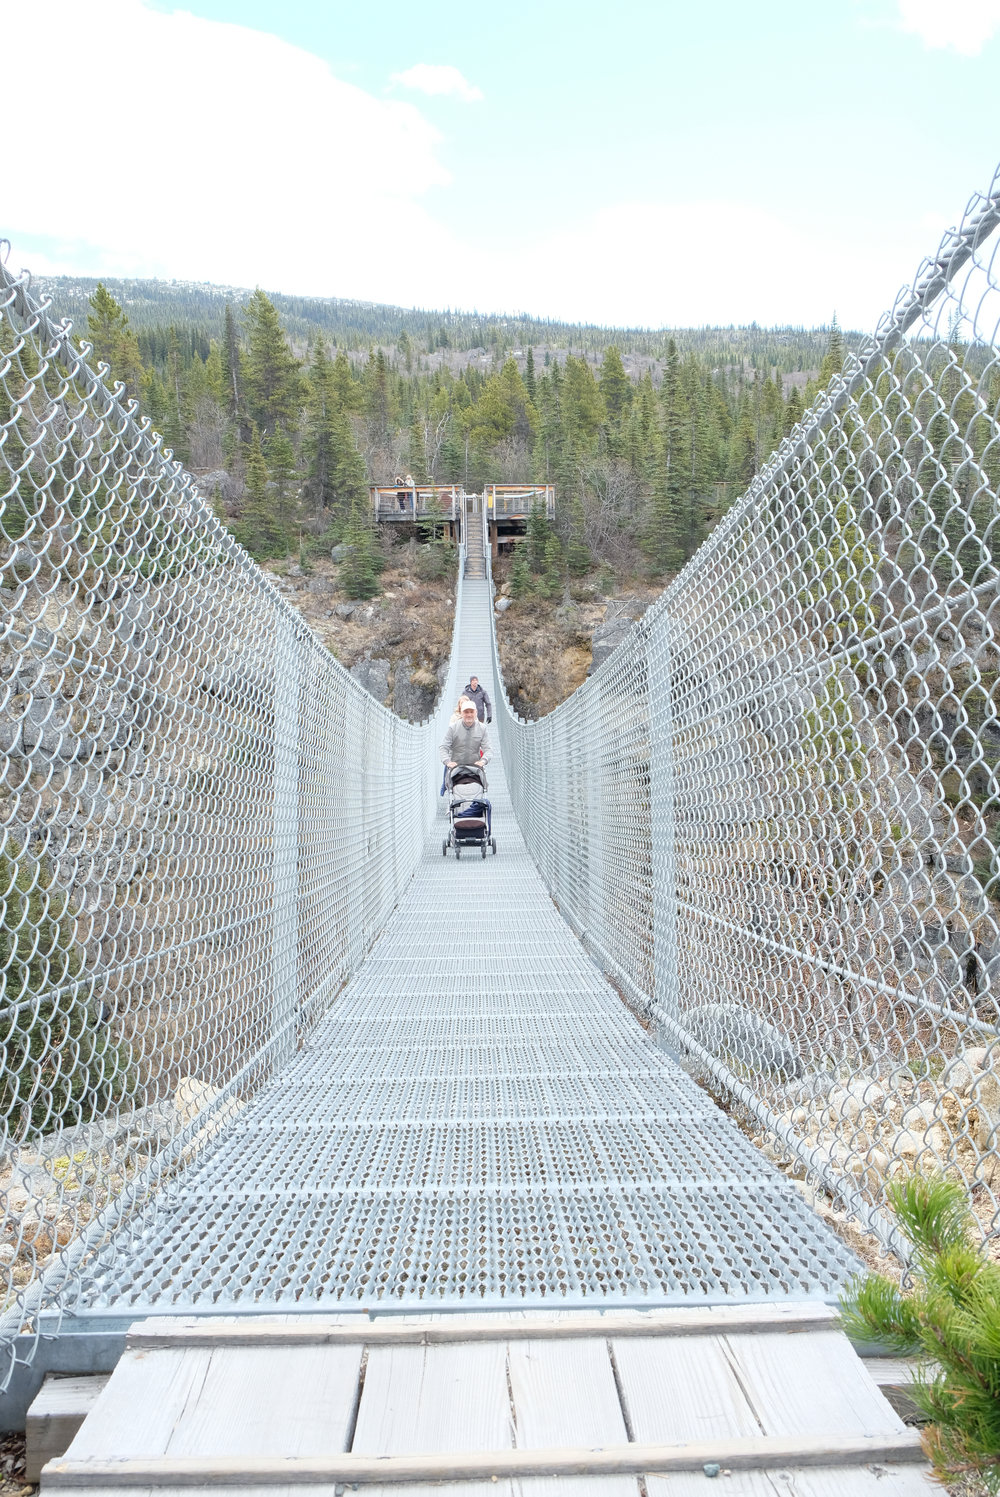 Yukon Suspension Bridge | Our Disney Cruise to Alaska | A Disney Cruise Guide by Totes and the City